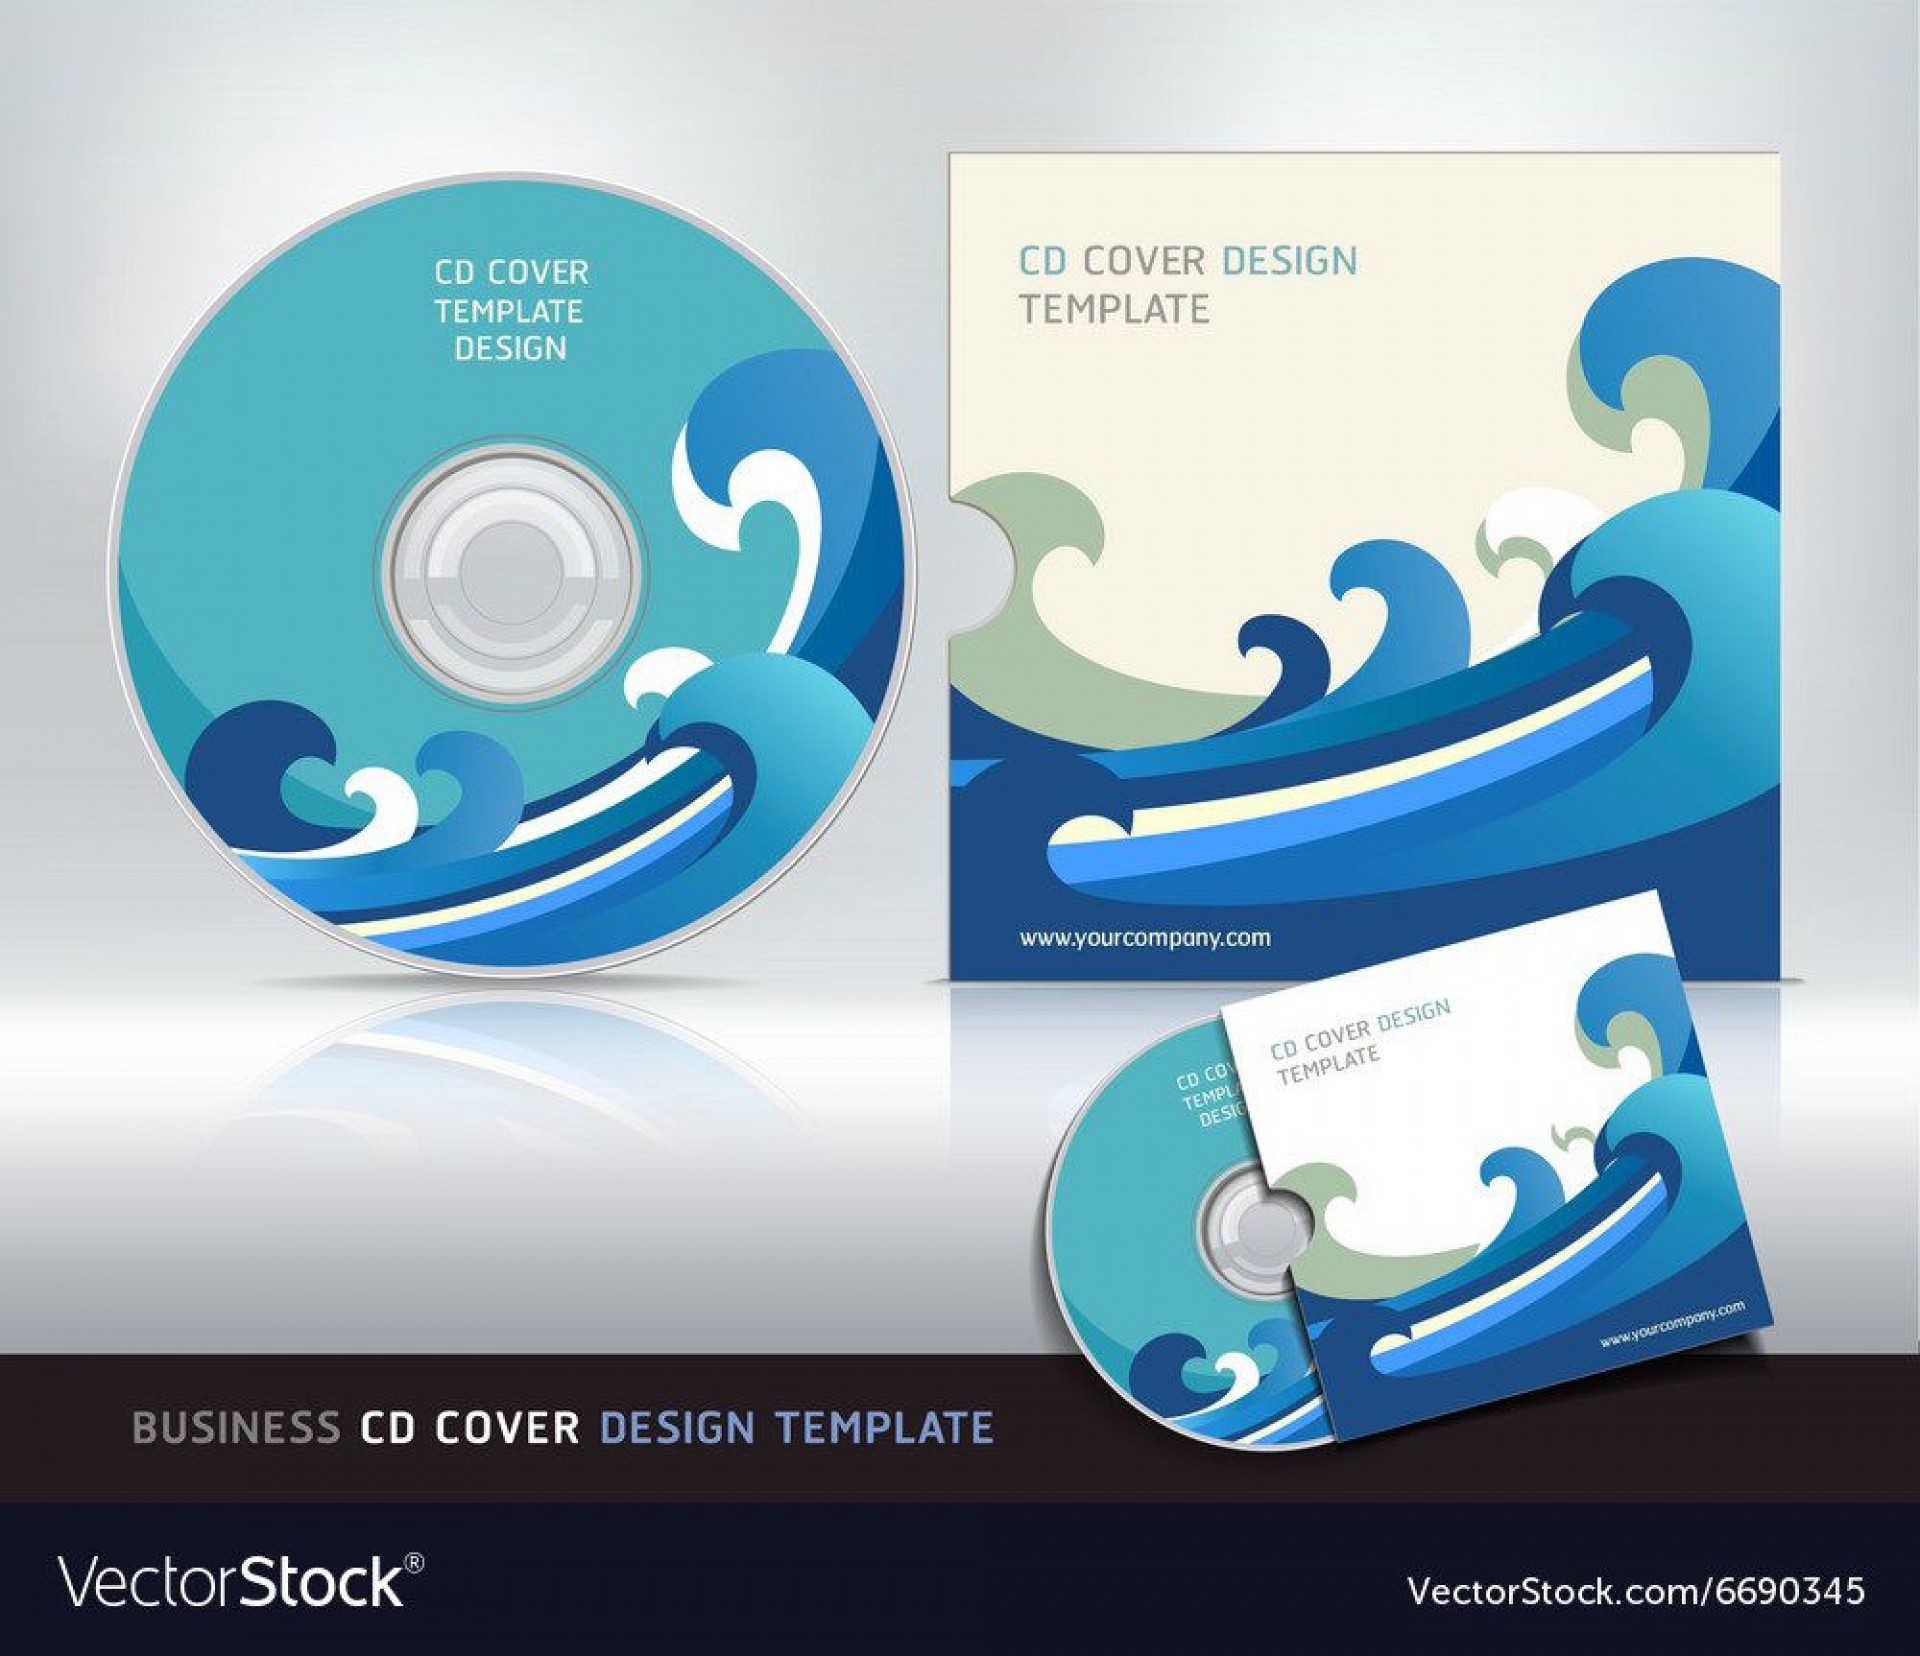 003 Stunning Cd Cover Design Template High Definition  Free Vector Illustration Word Psd Download1920